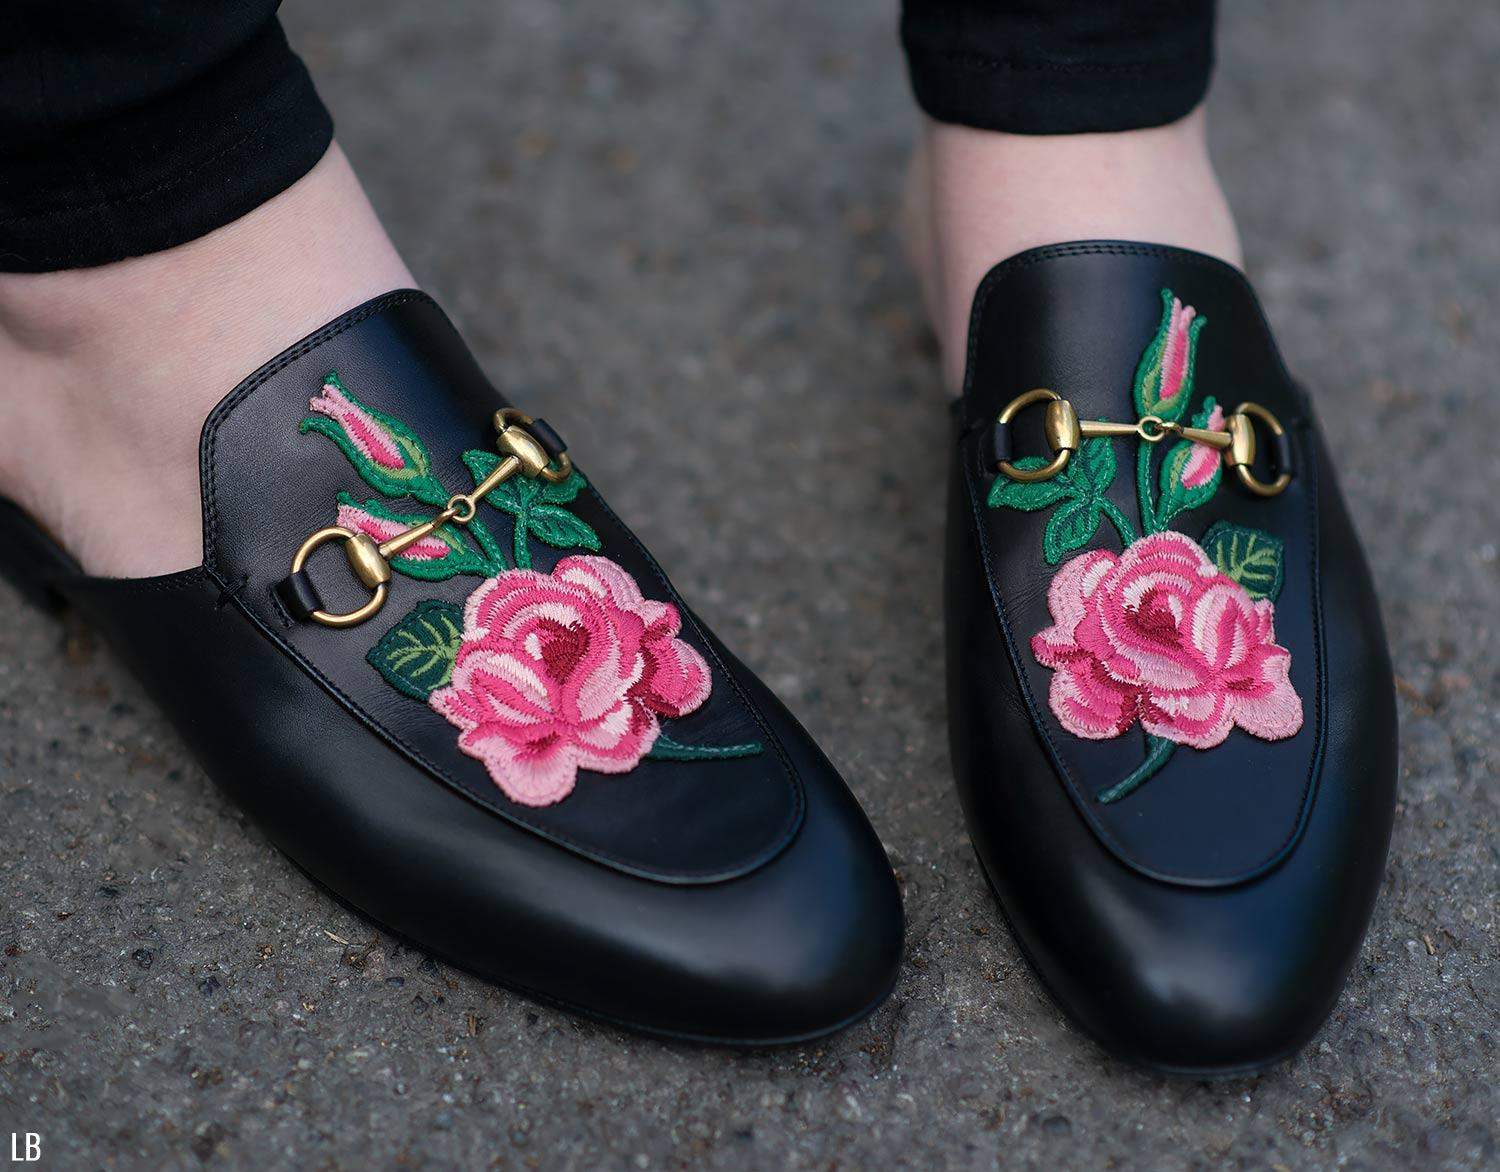 52babb1c561 My New Gucci Princetown Floral Embroidered Loafers Review ...